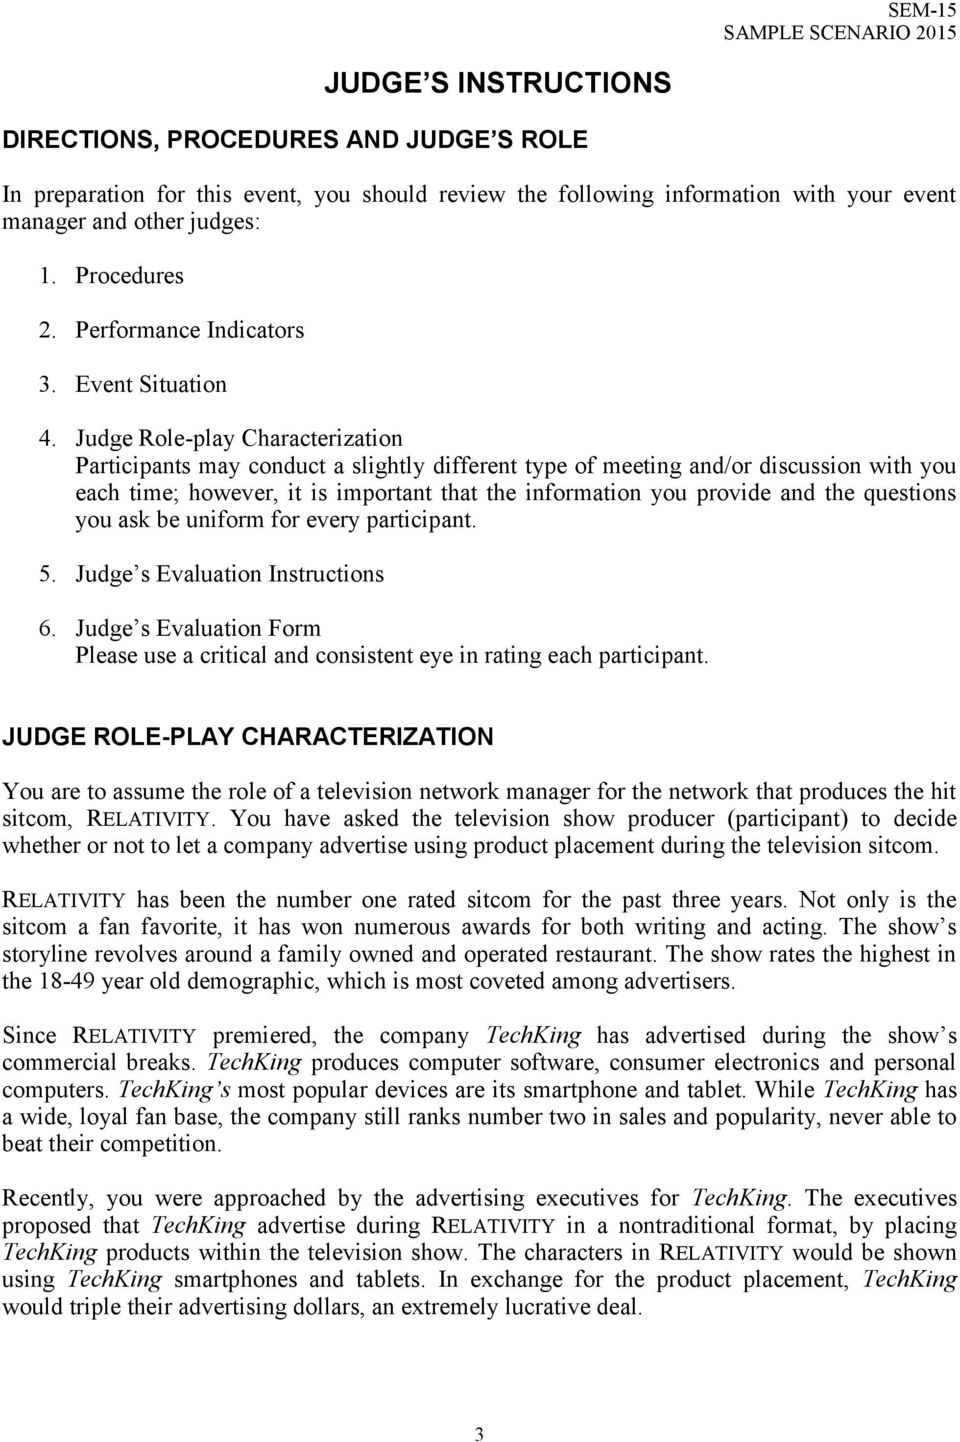 Judge Role-play Characterization Participants may conduct a slightly different type of meeting and/or discussion with you each time; however, it is important that the information you provide and the